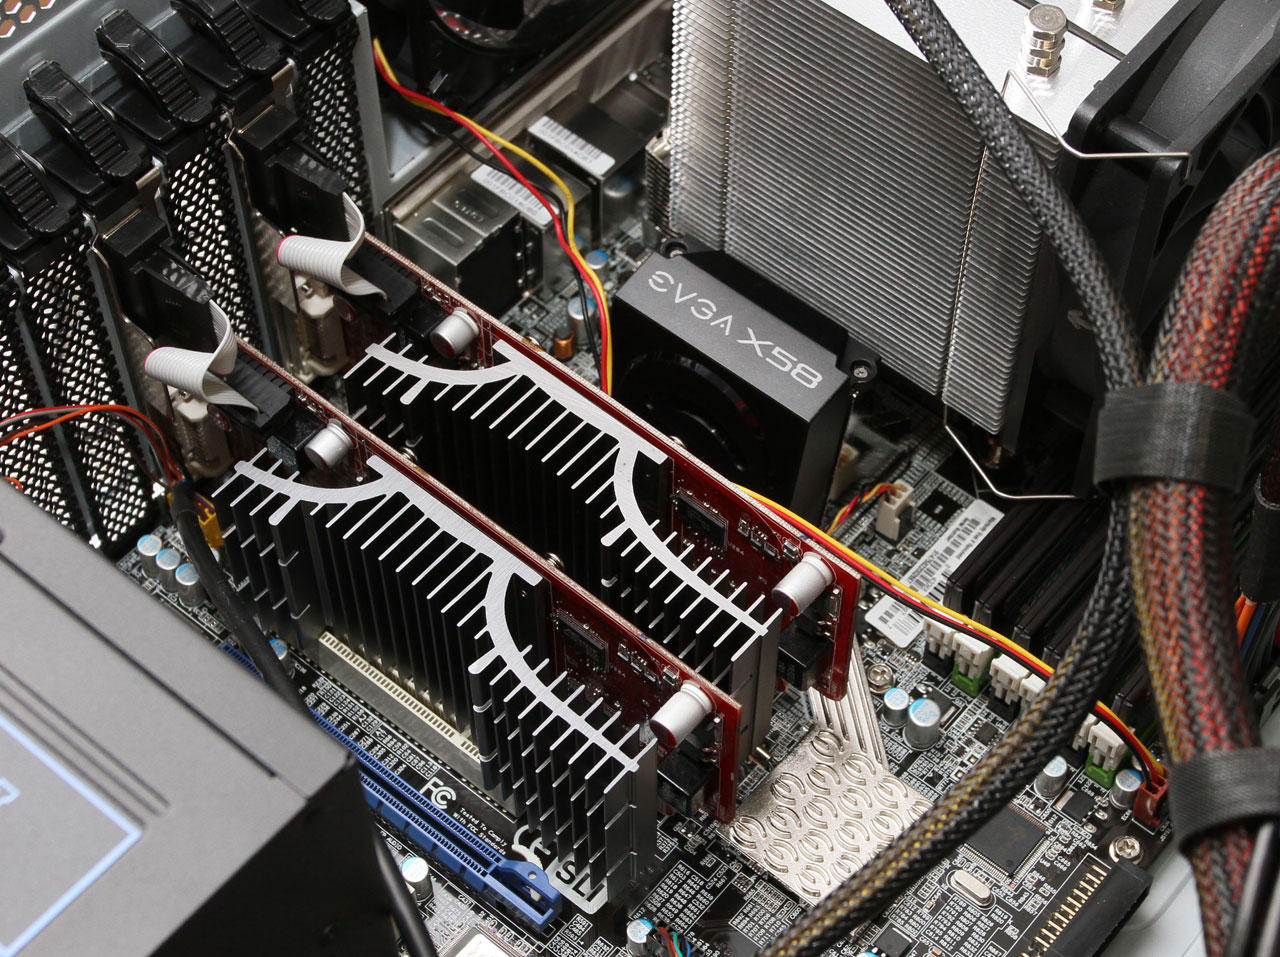 Dual ASUS EAH4350 (ATI 4350) silent video cards installed in the motherboard to support 4 monitors